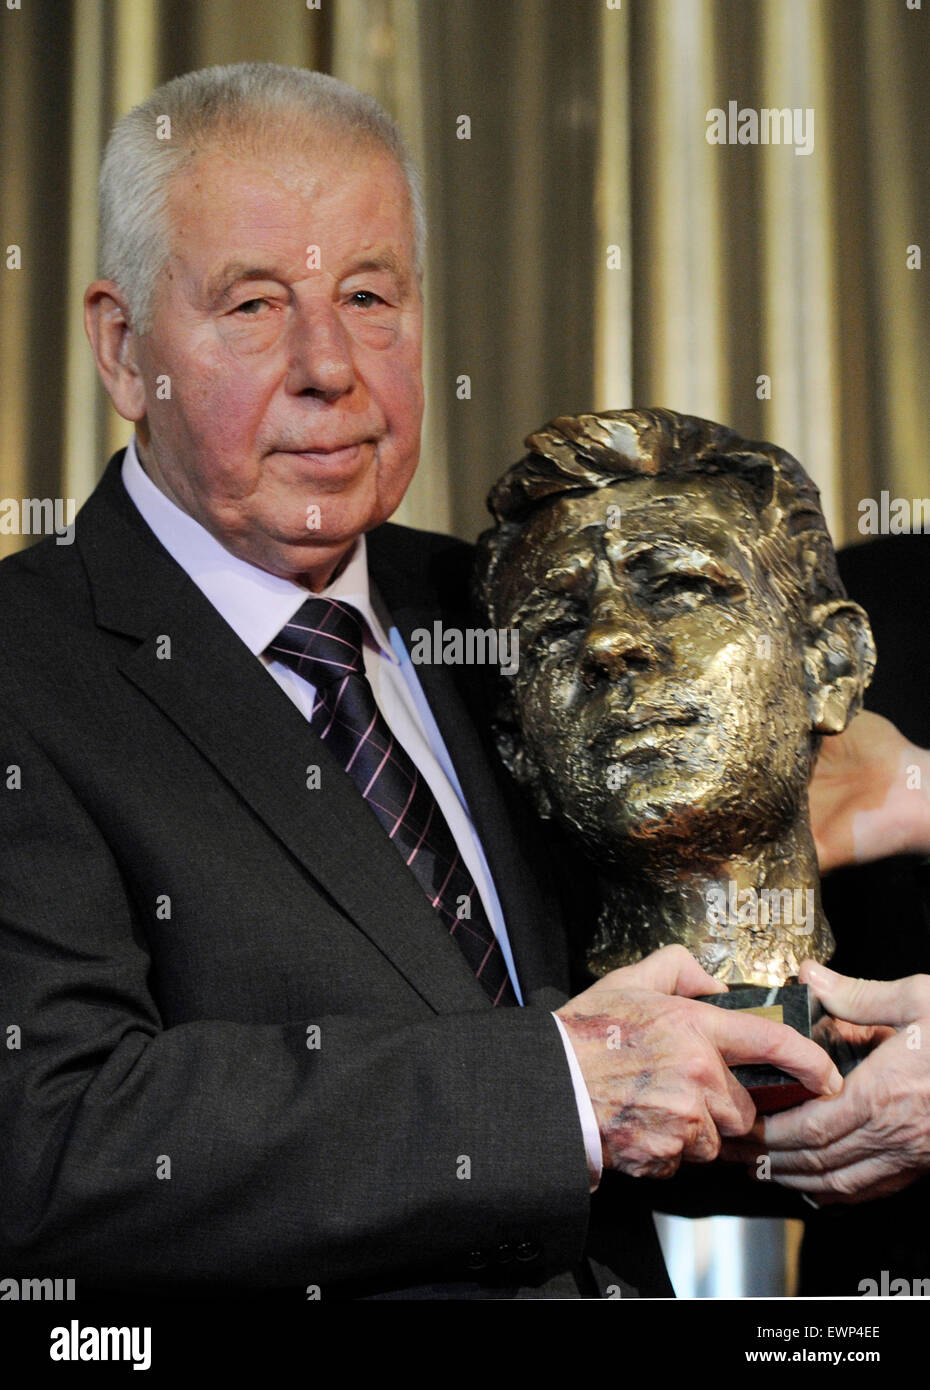 FILE PHOTO Legendary soccer player Josef Masopust poses with